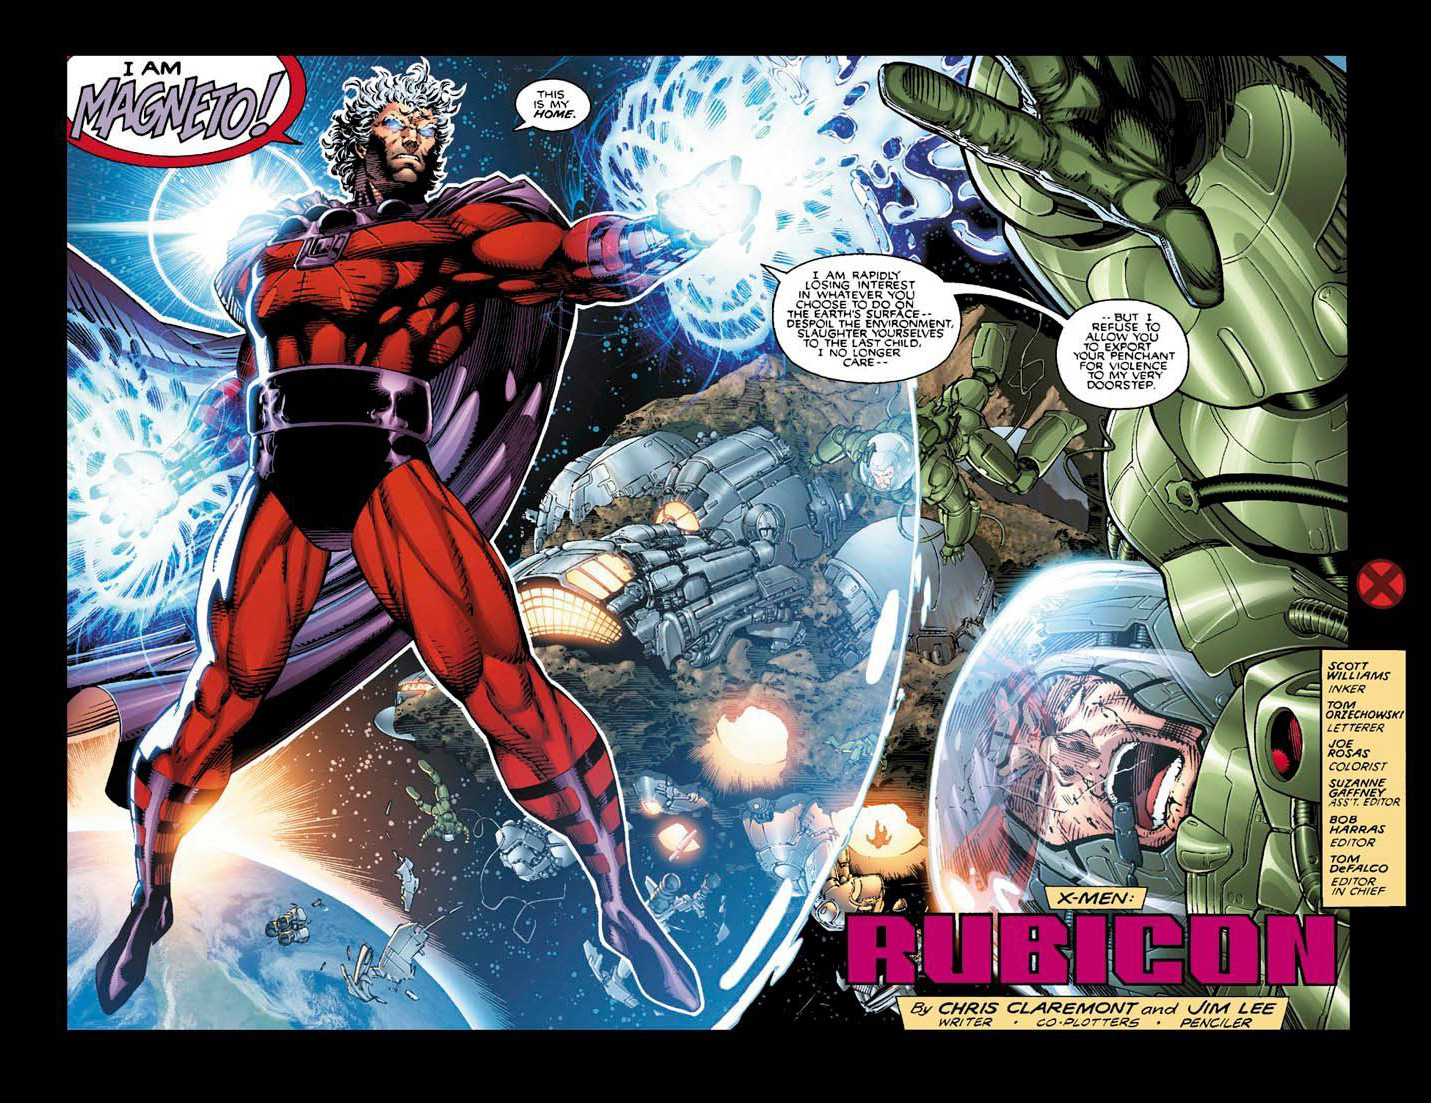 jim-lee-magneto-x-men-1